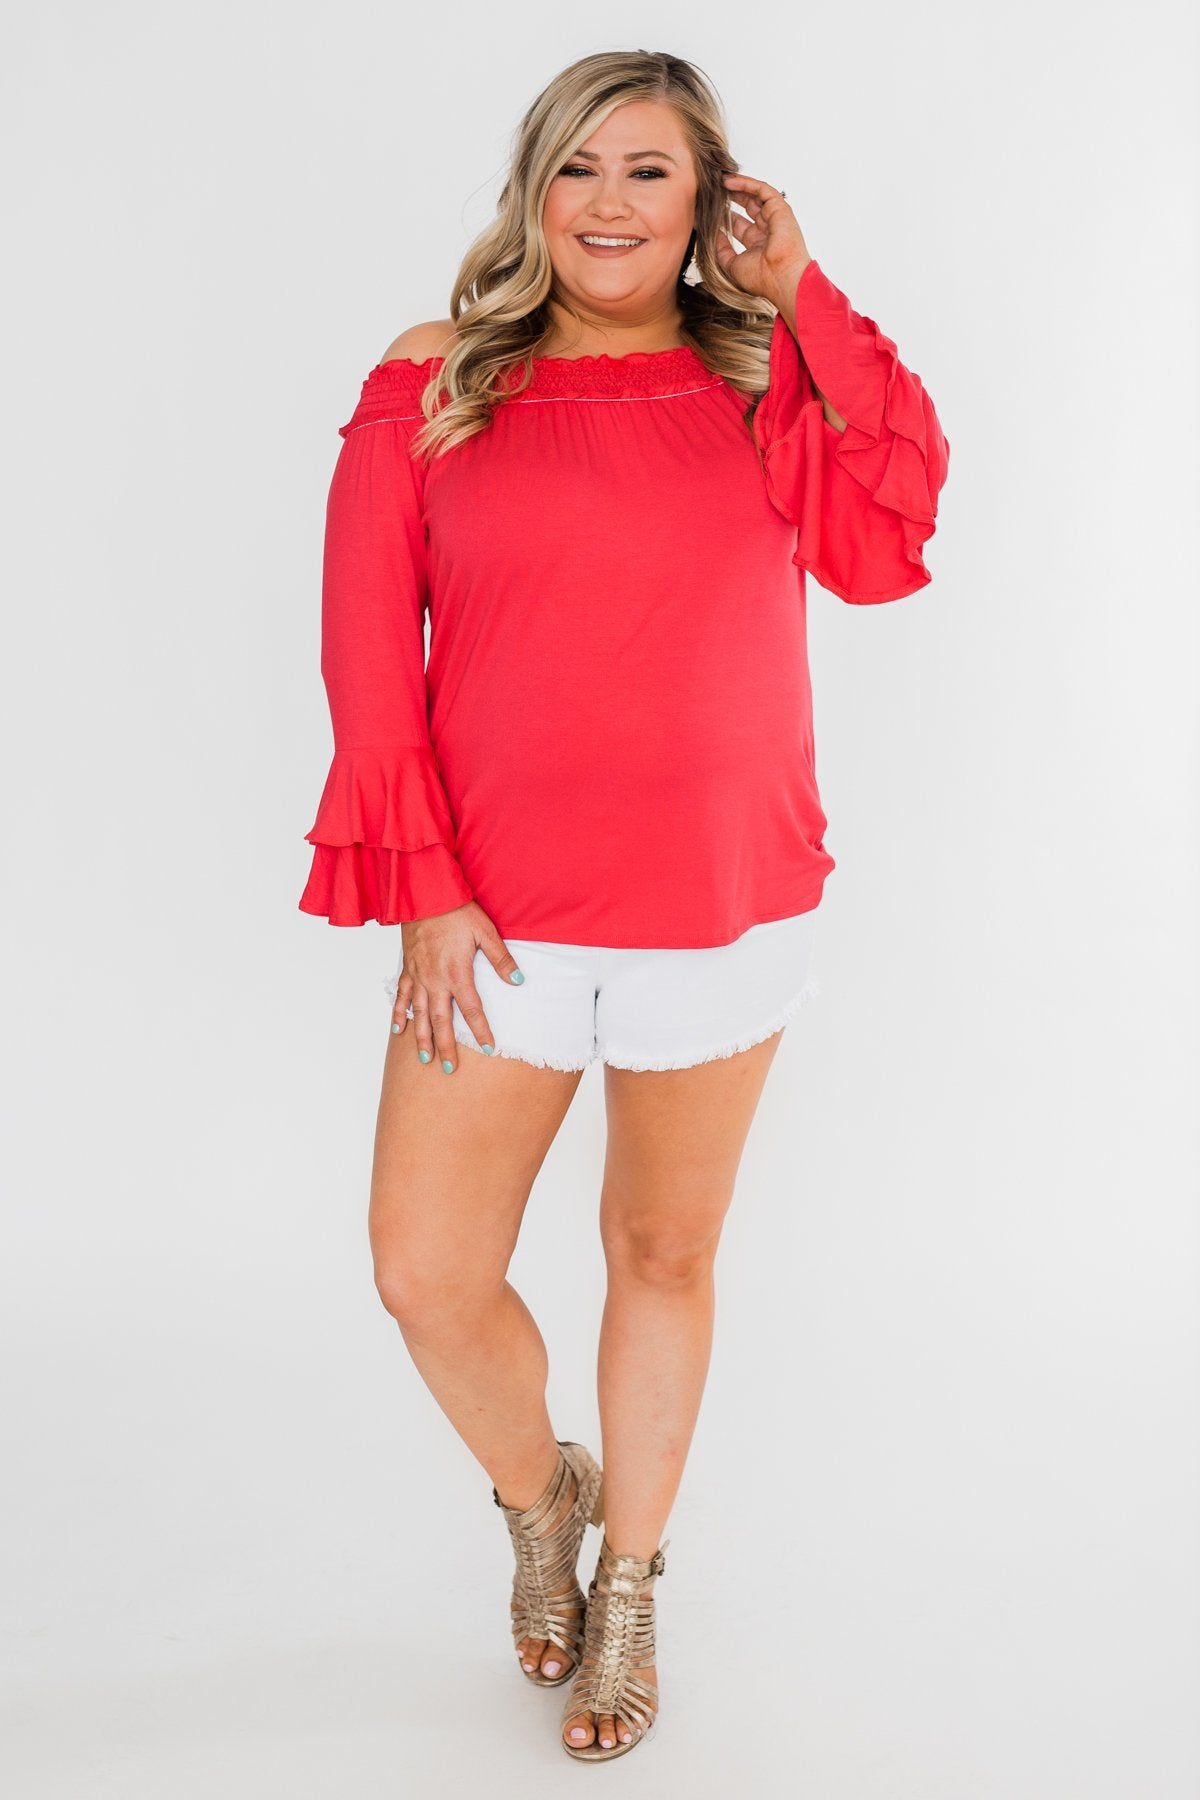 Everlasting Love Off The Shoulder Ruffle Top- Dark Strawberry